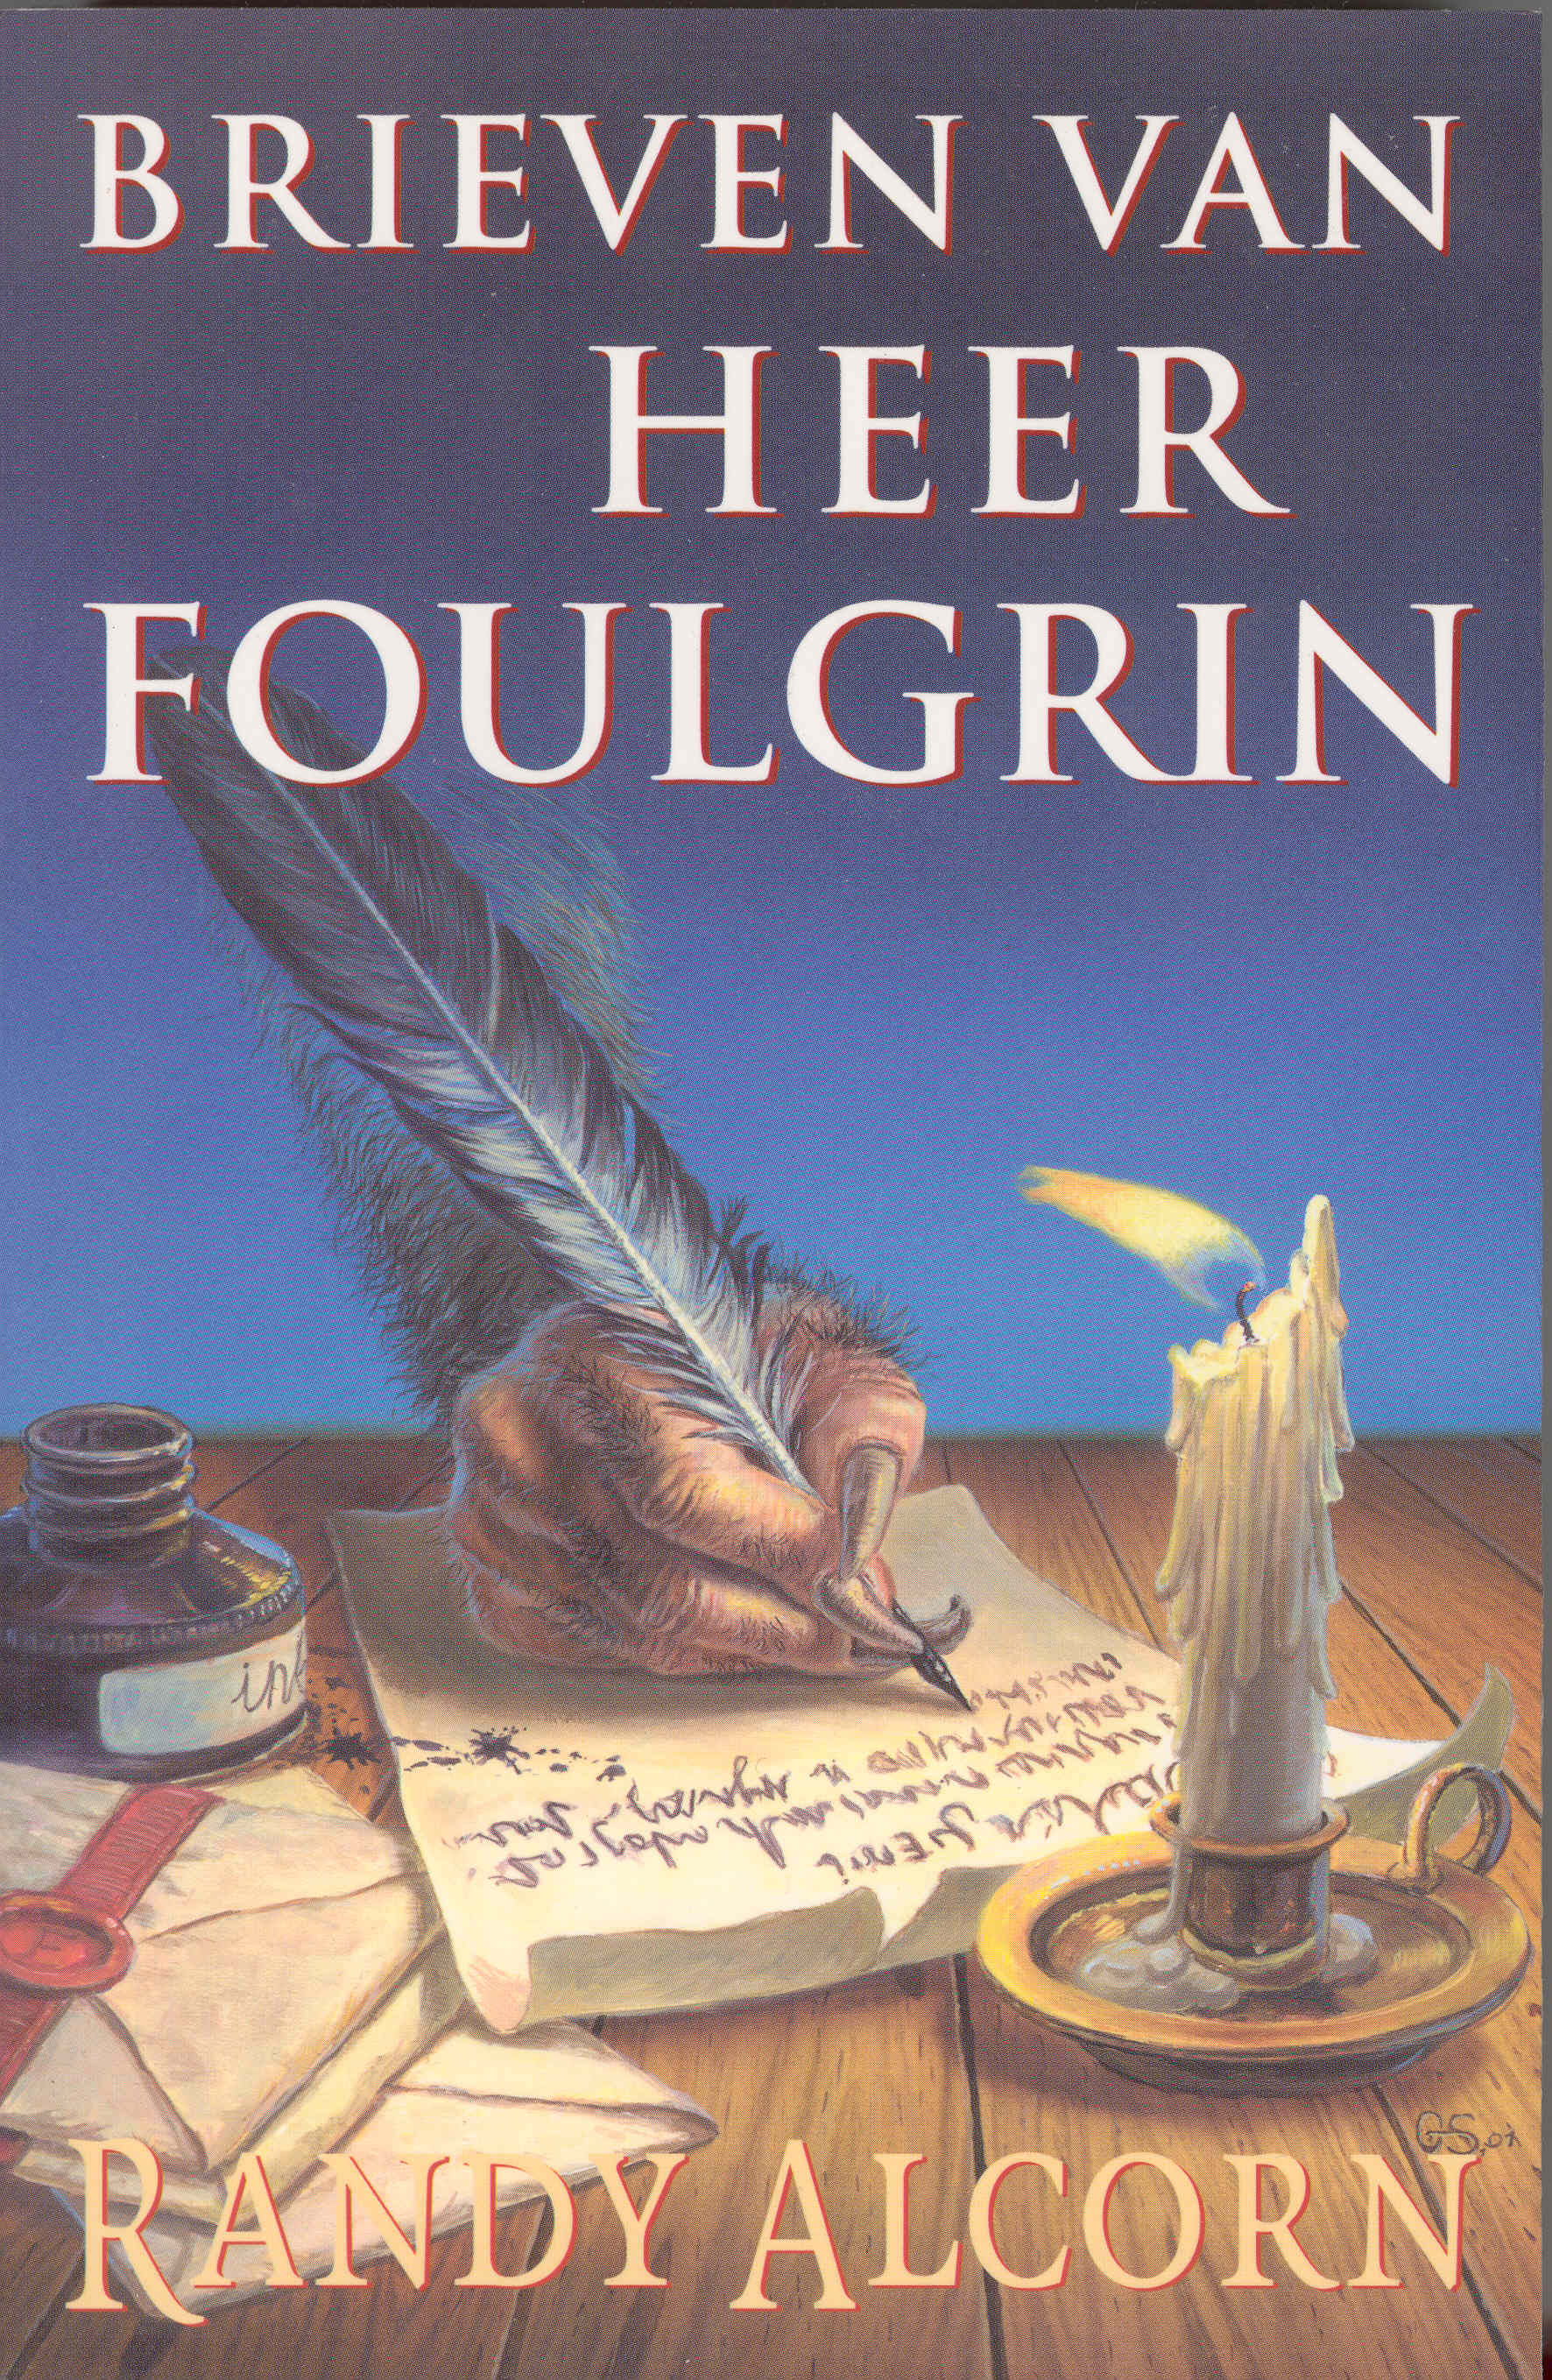 lord-foulgrins-letters-dutch.jpg